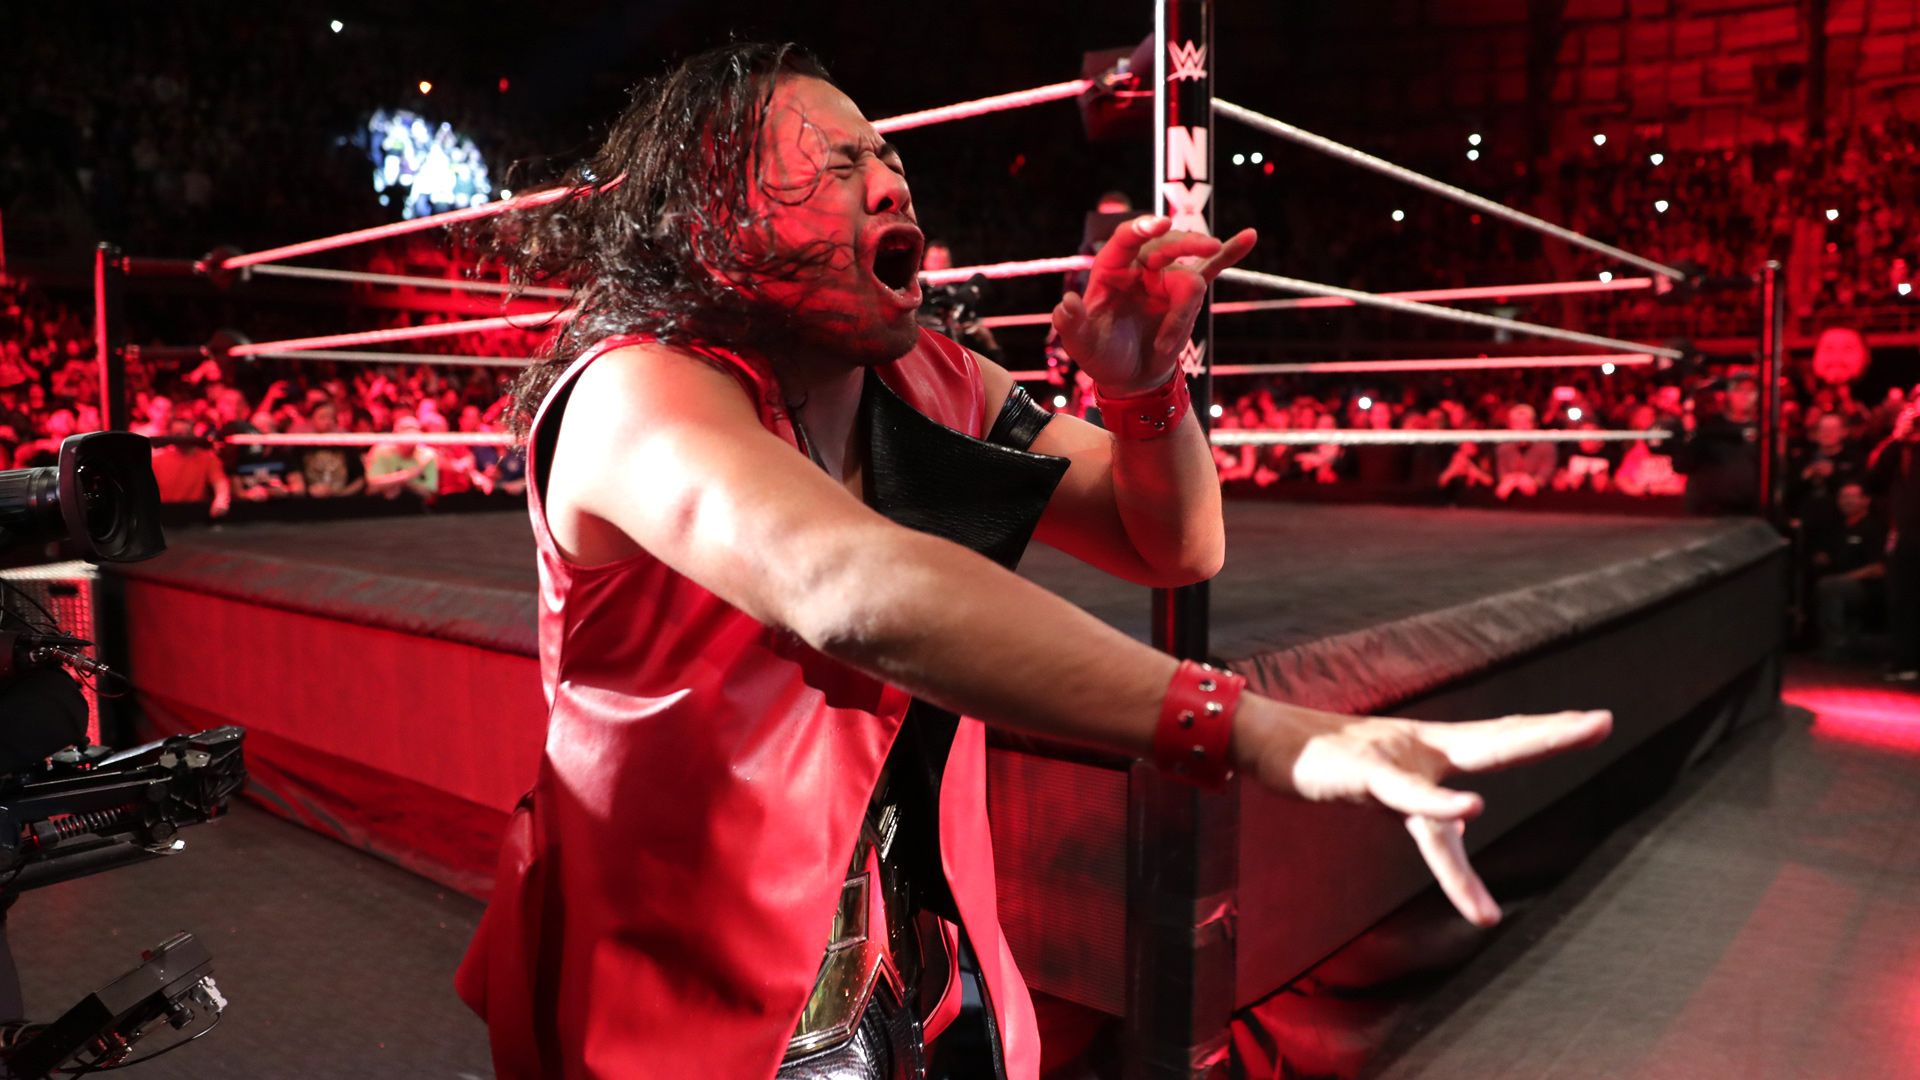 1920x1080 WWE Superstar Shinsuke Nakamura image | Beautiful images HD Pictures ...